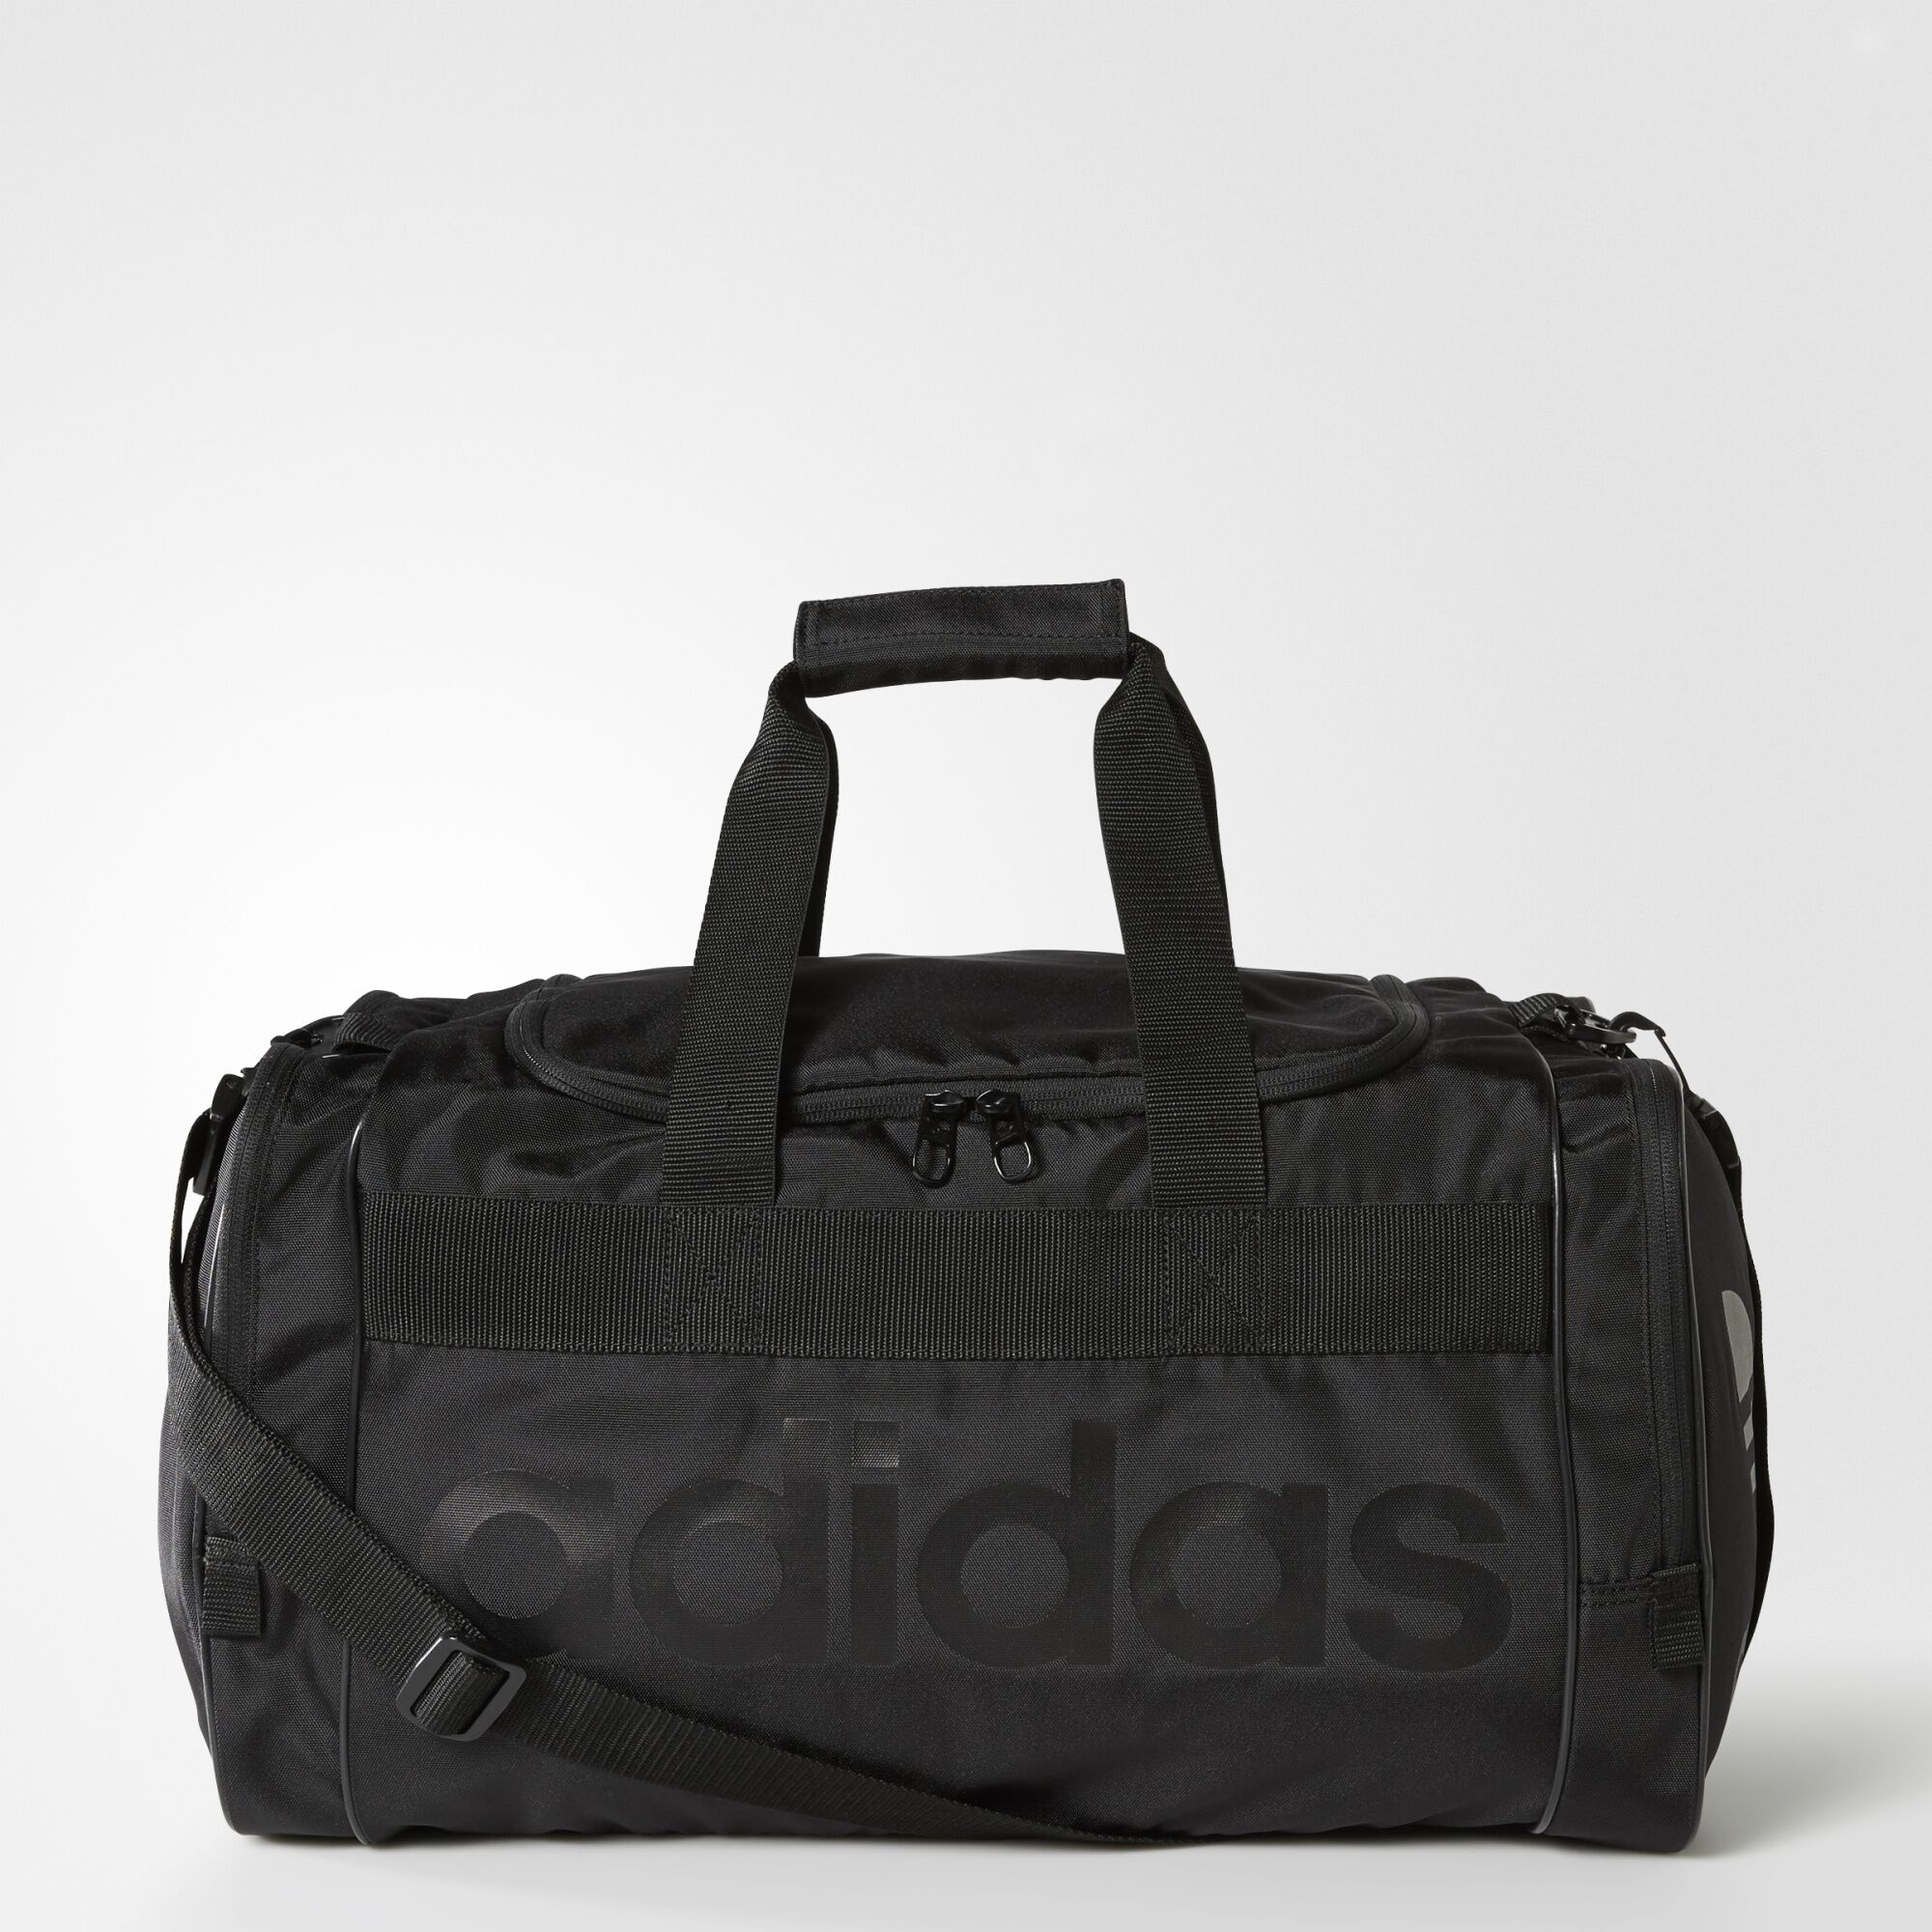 Buy adidas overnight bag   OFF71% Discounted 04ad17f17c344